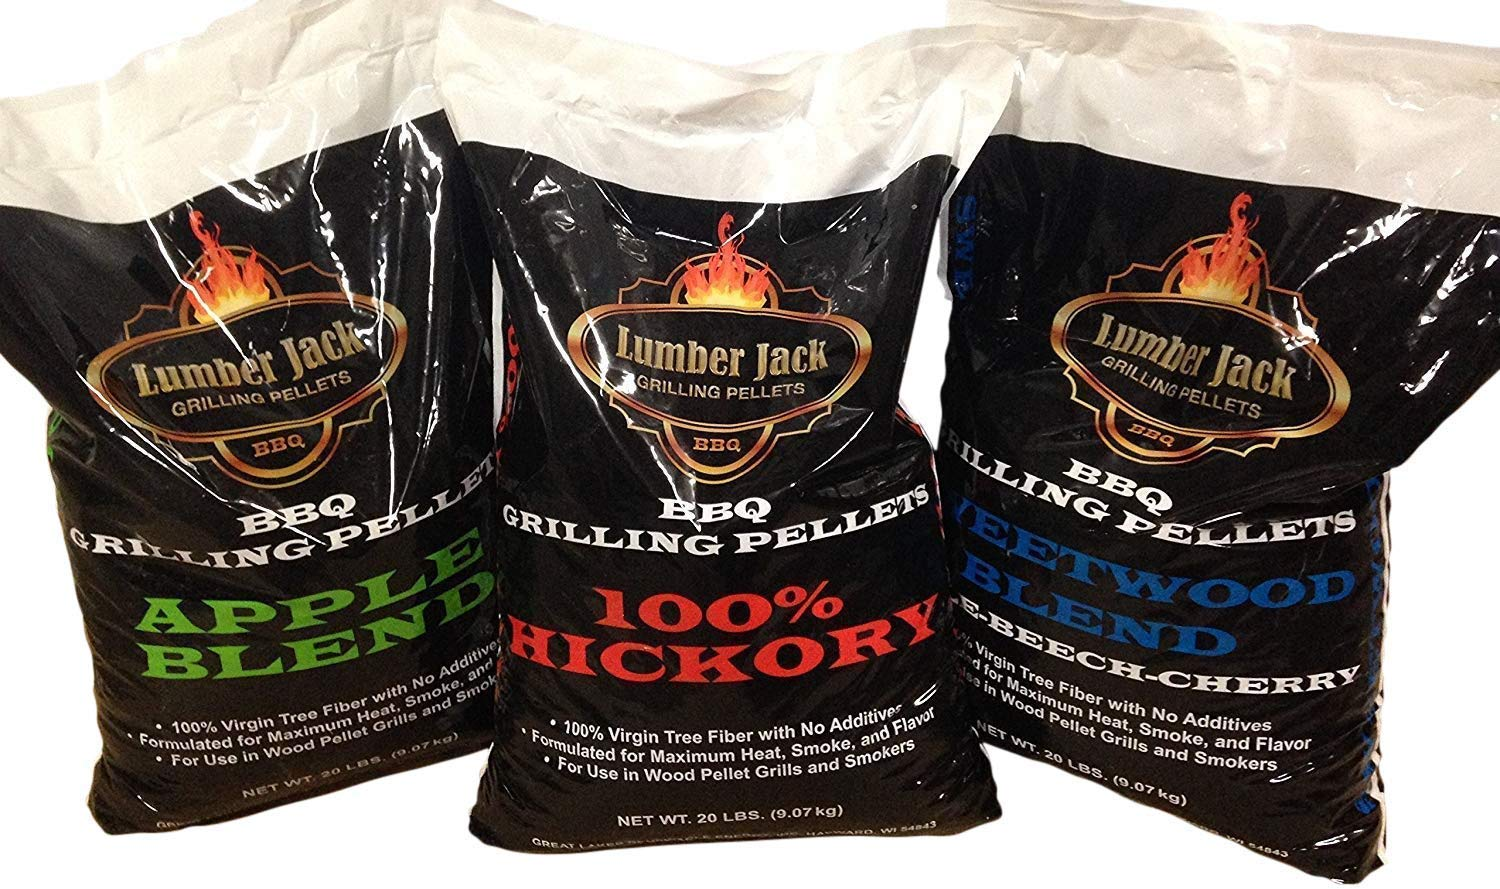 Lumber Jack BBQ 60 Pounds Pellet Assortment (Pick 3 x 20 Pound Bags) by Lumber Jack